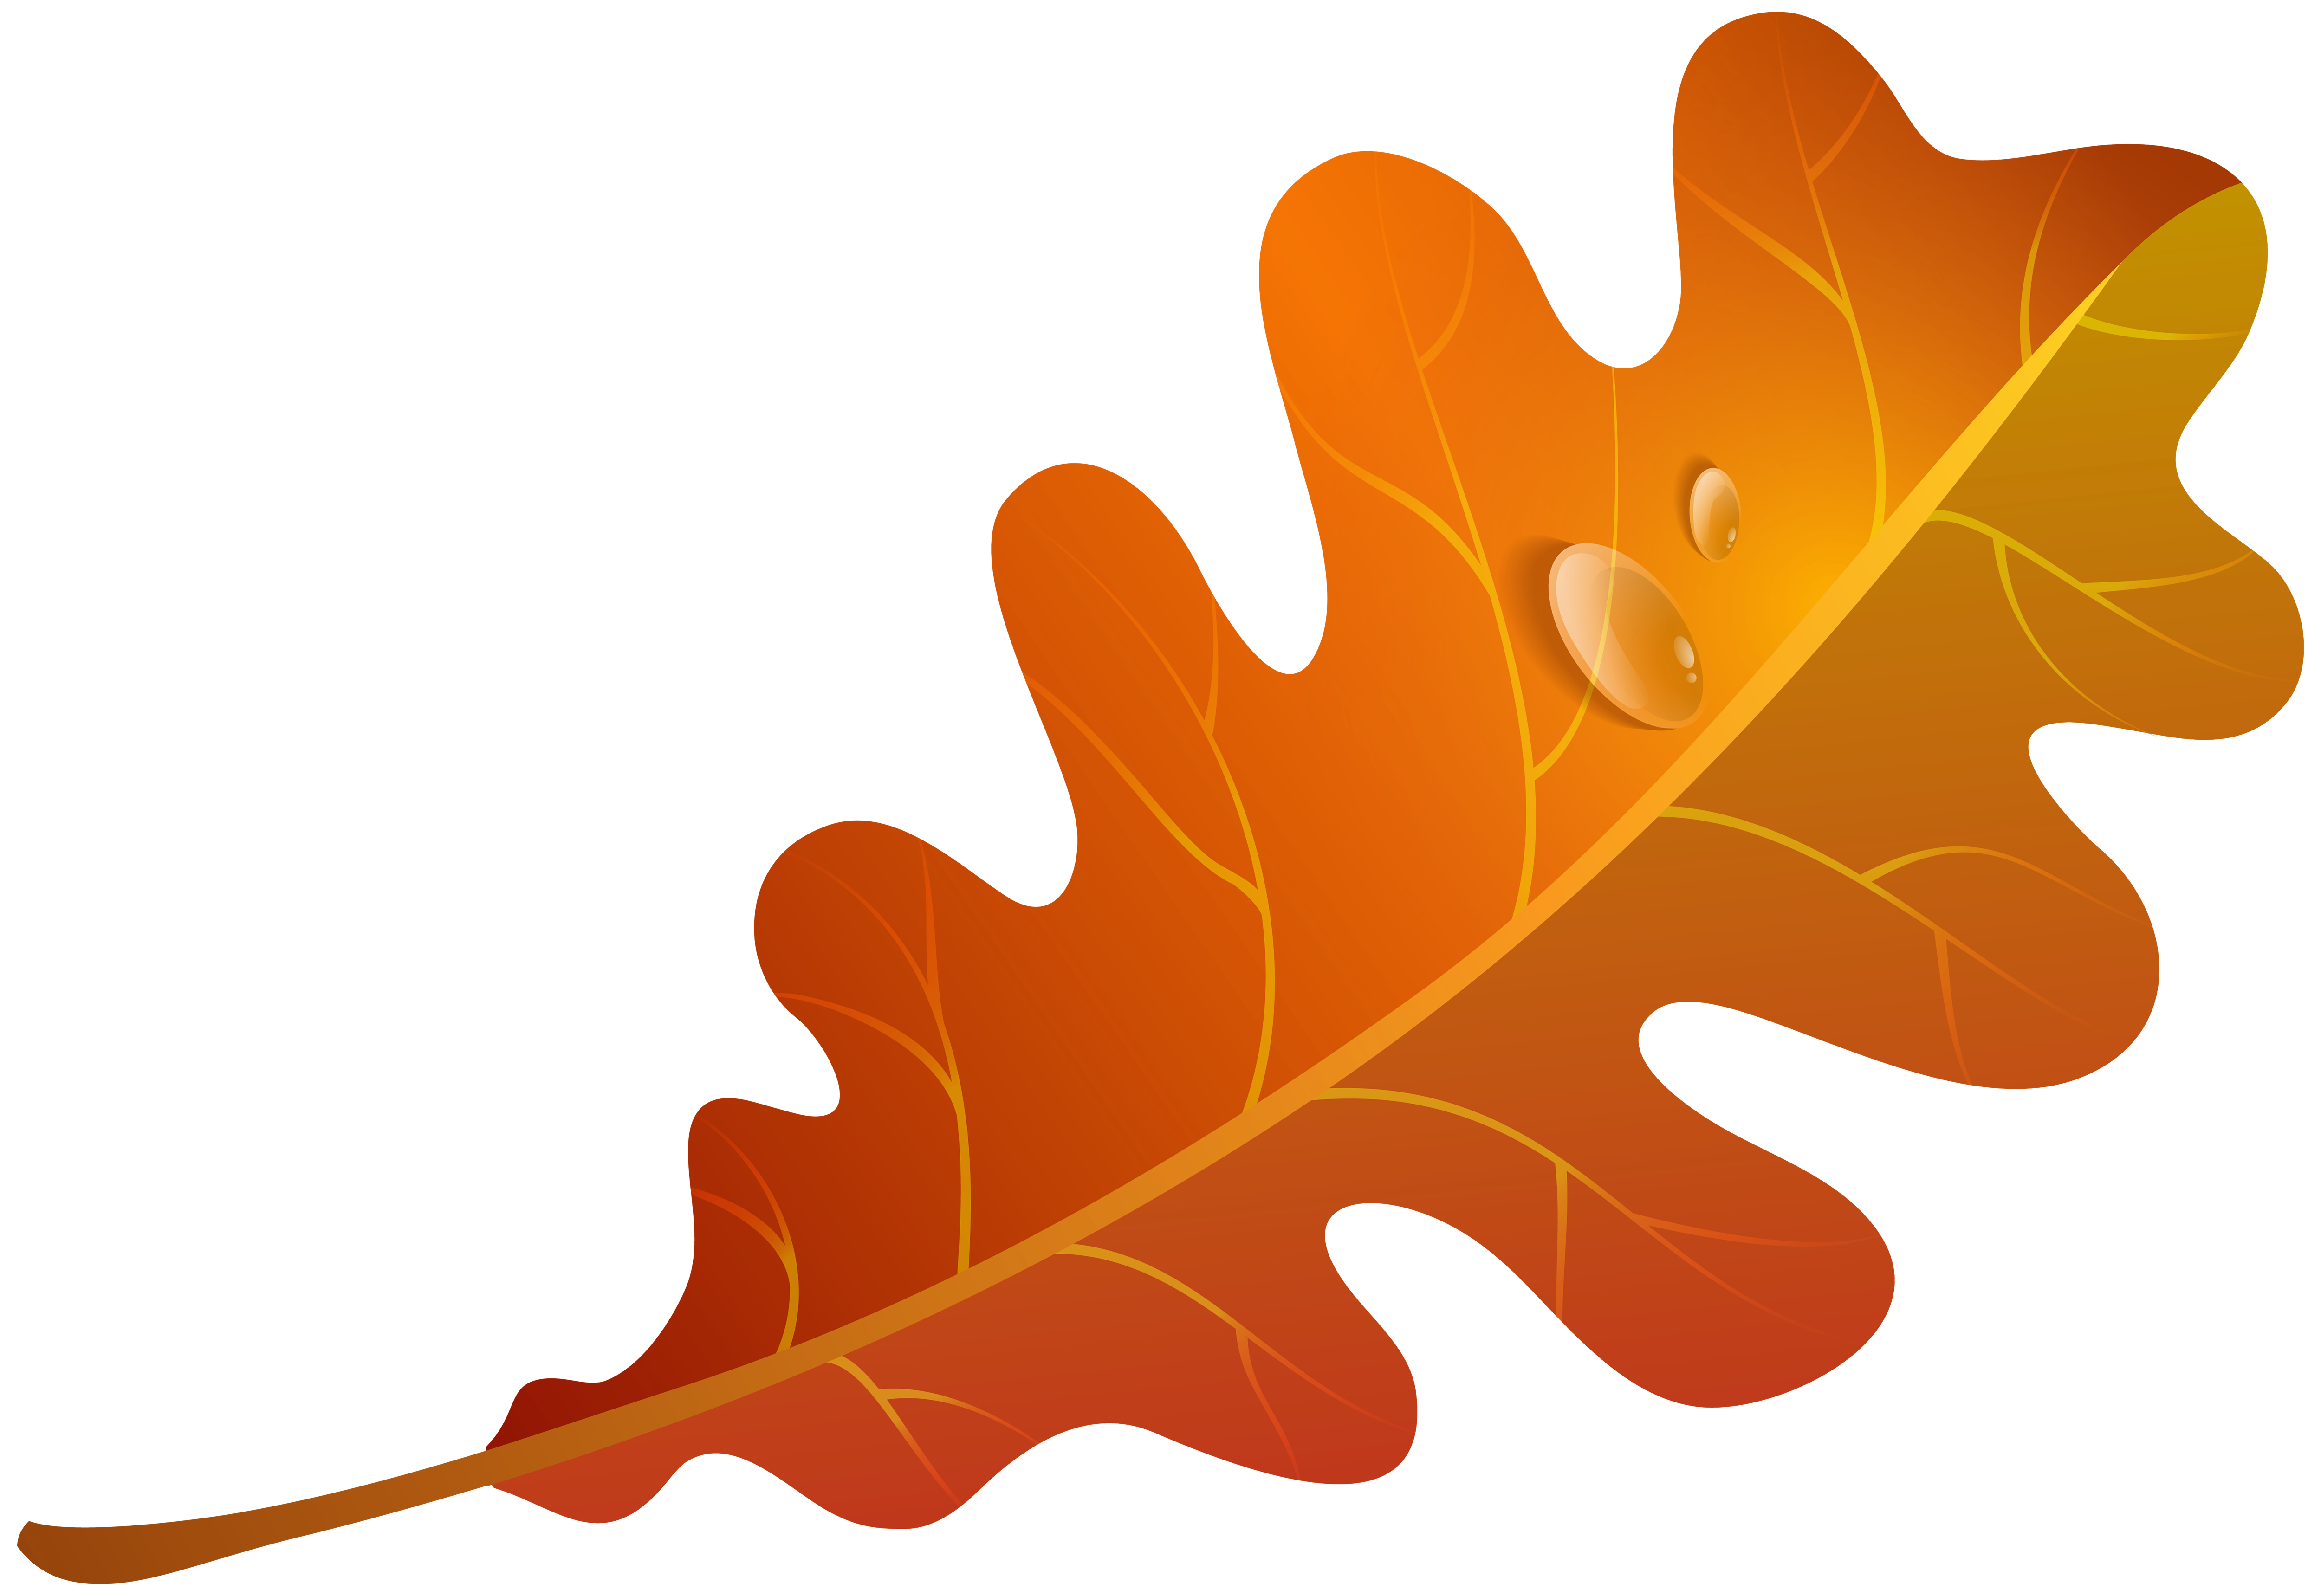 5000x3439 Edit And Free Download Fall Orange Leaf Png Clipart Image